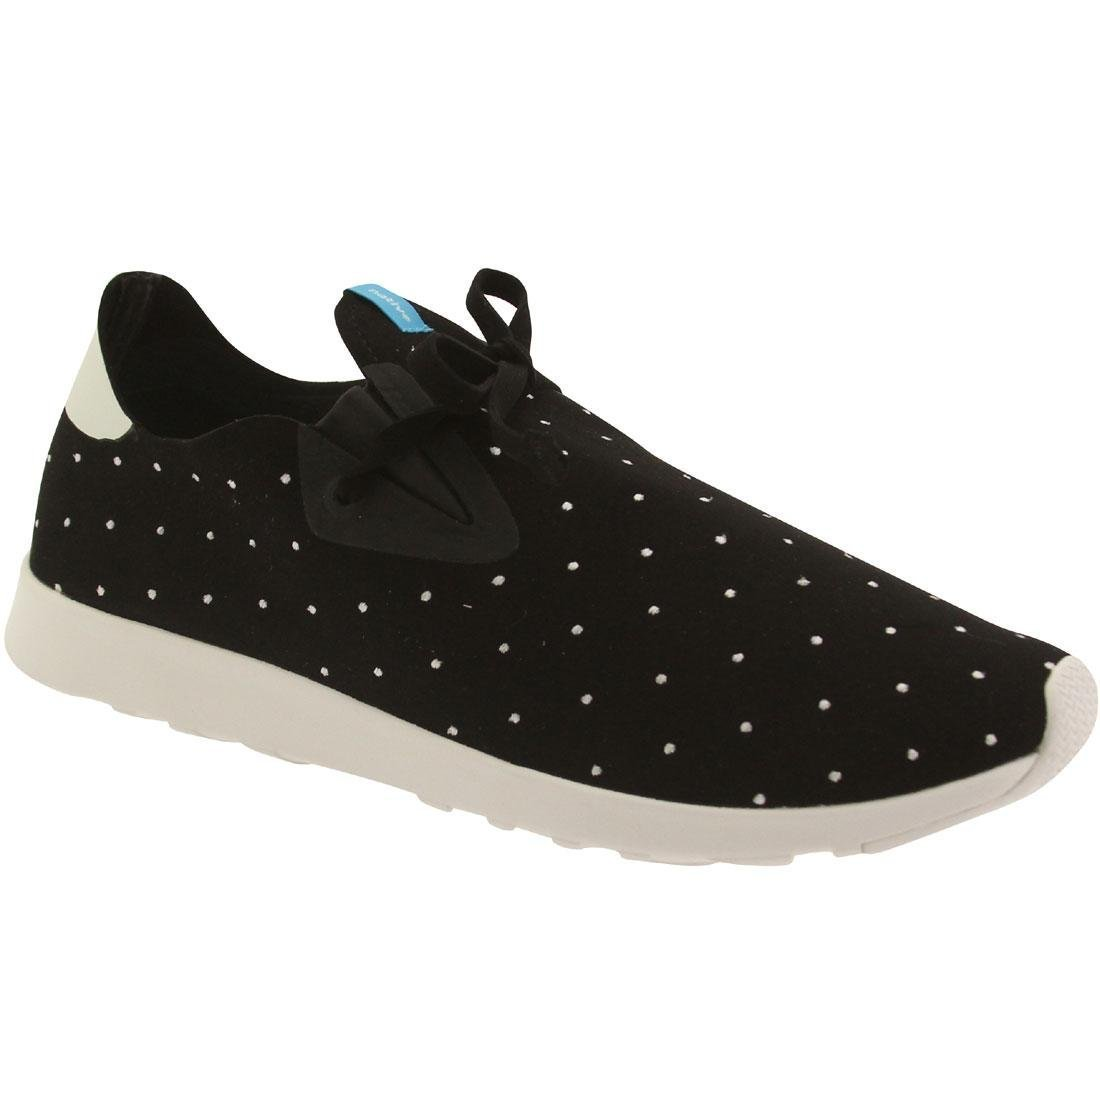 Native Unisex Apollo Moc Fashion Sneaker. B011PLLH4U 15 B(M) US Women / 13 D(M) US Men|Jiffy Black/Shell White/Polka Dot